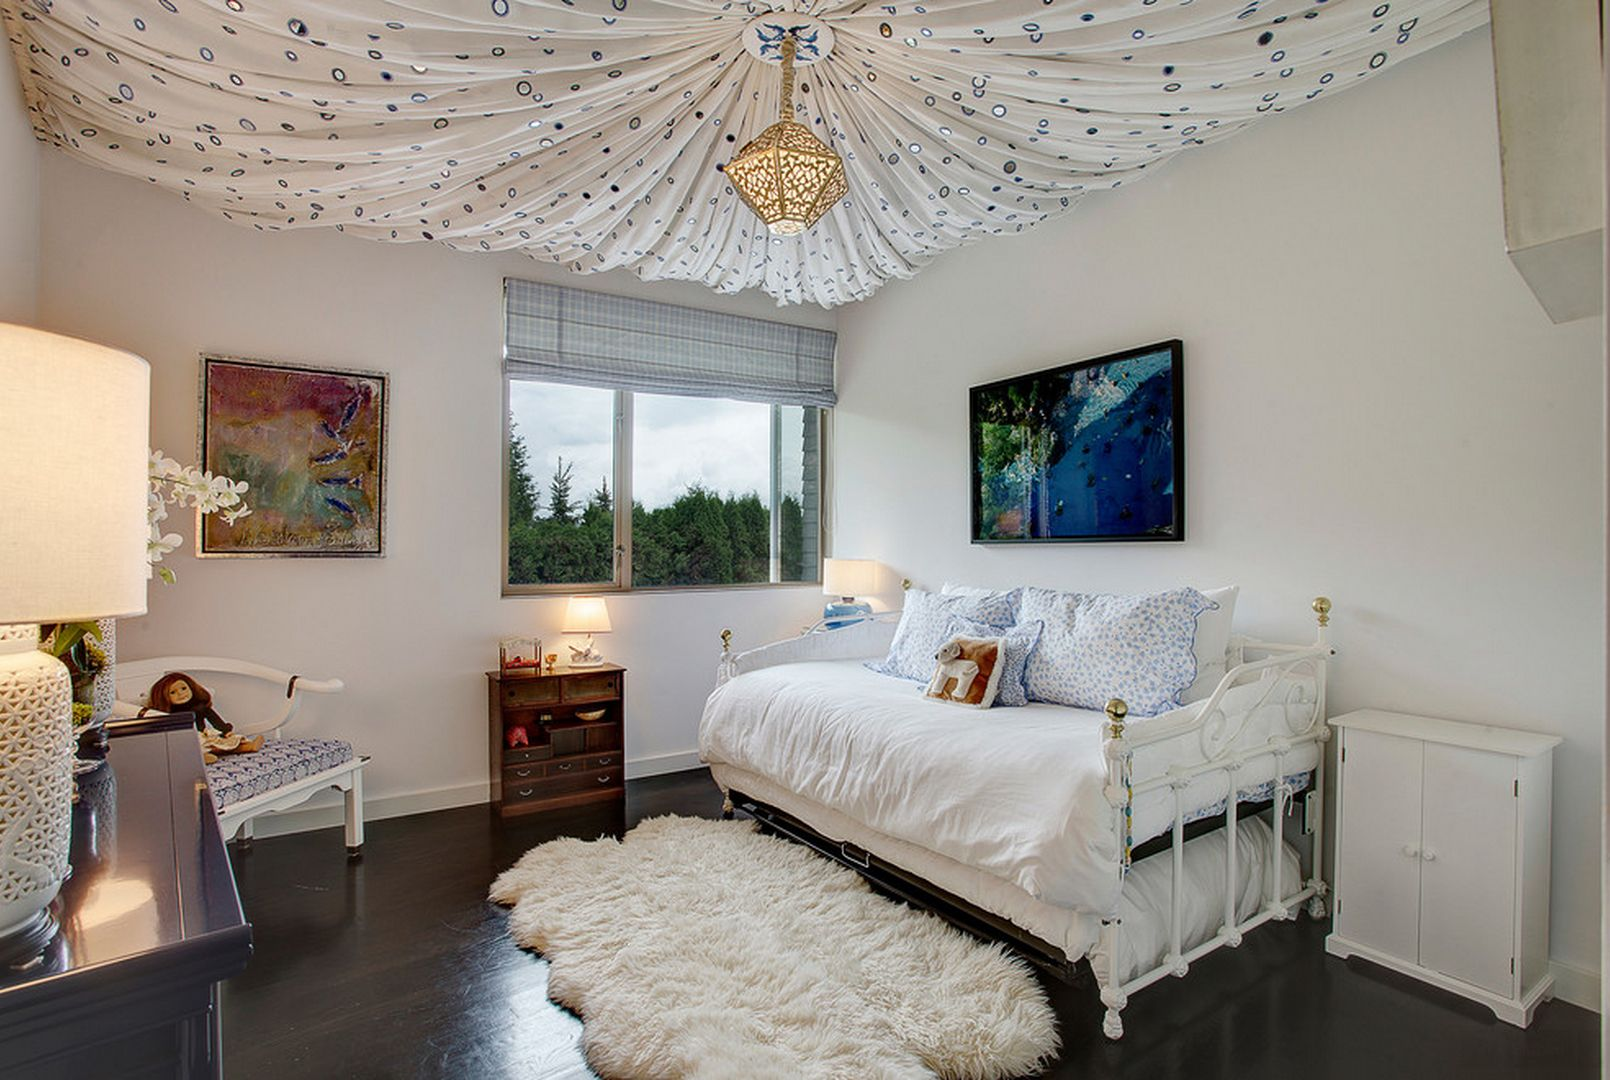 Ceiling Designs 2016: Full Review of the New Trends. Curtain for the ceiling is the pinnacle of designer`s thought